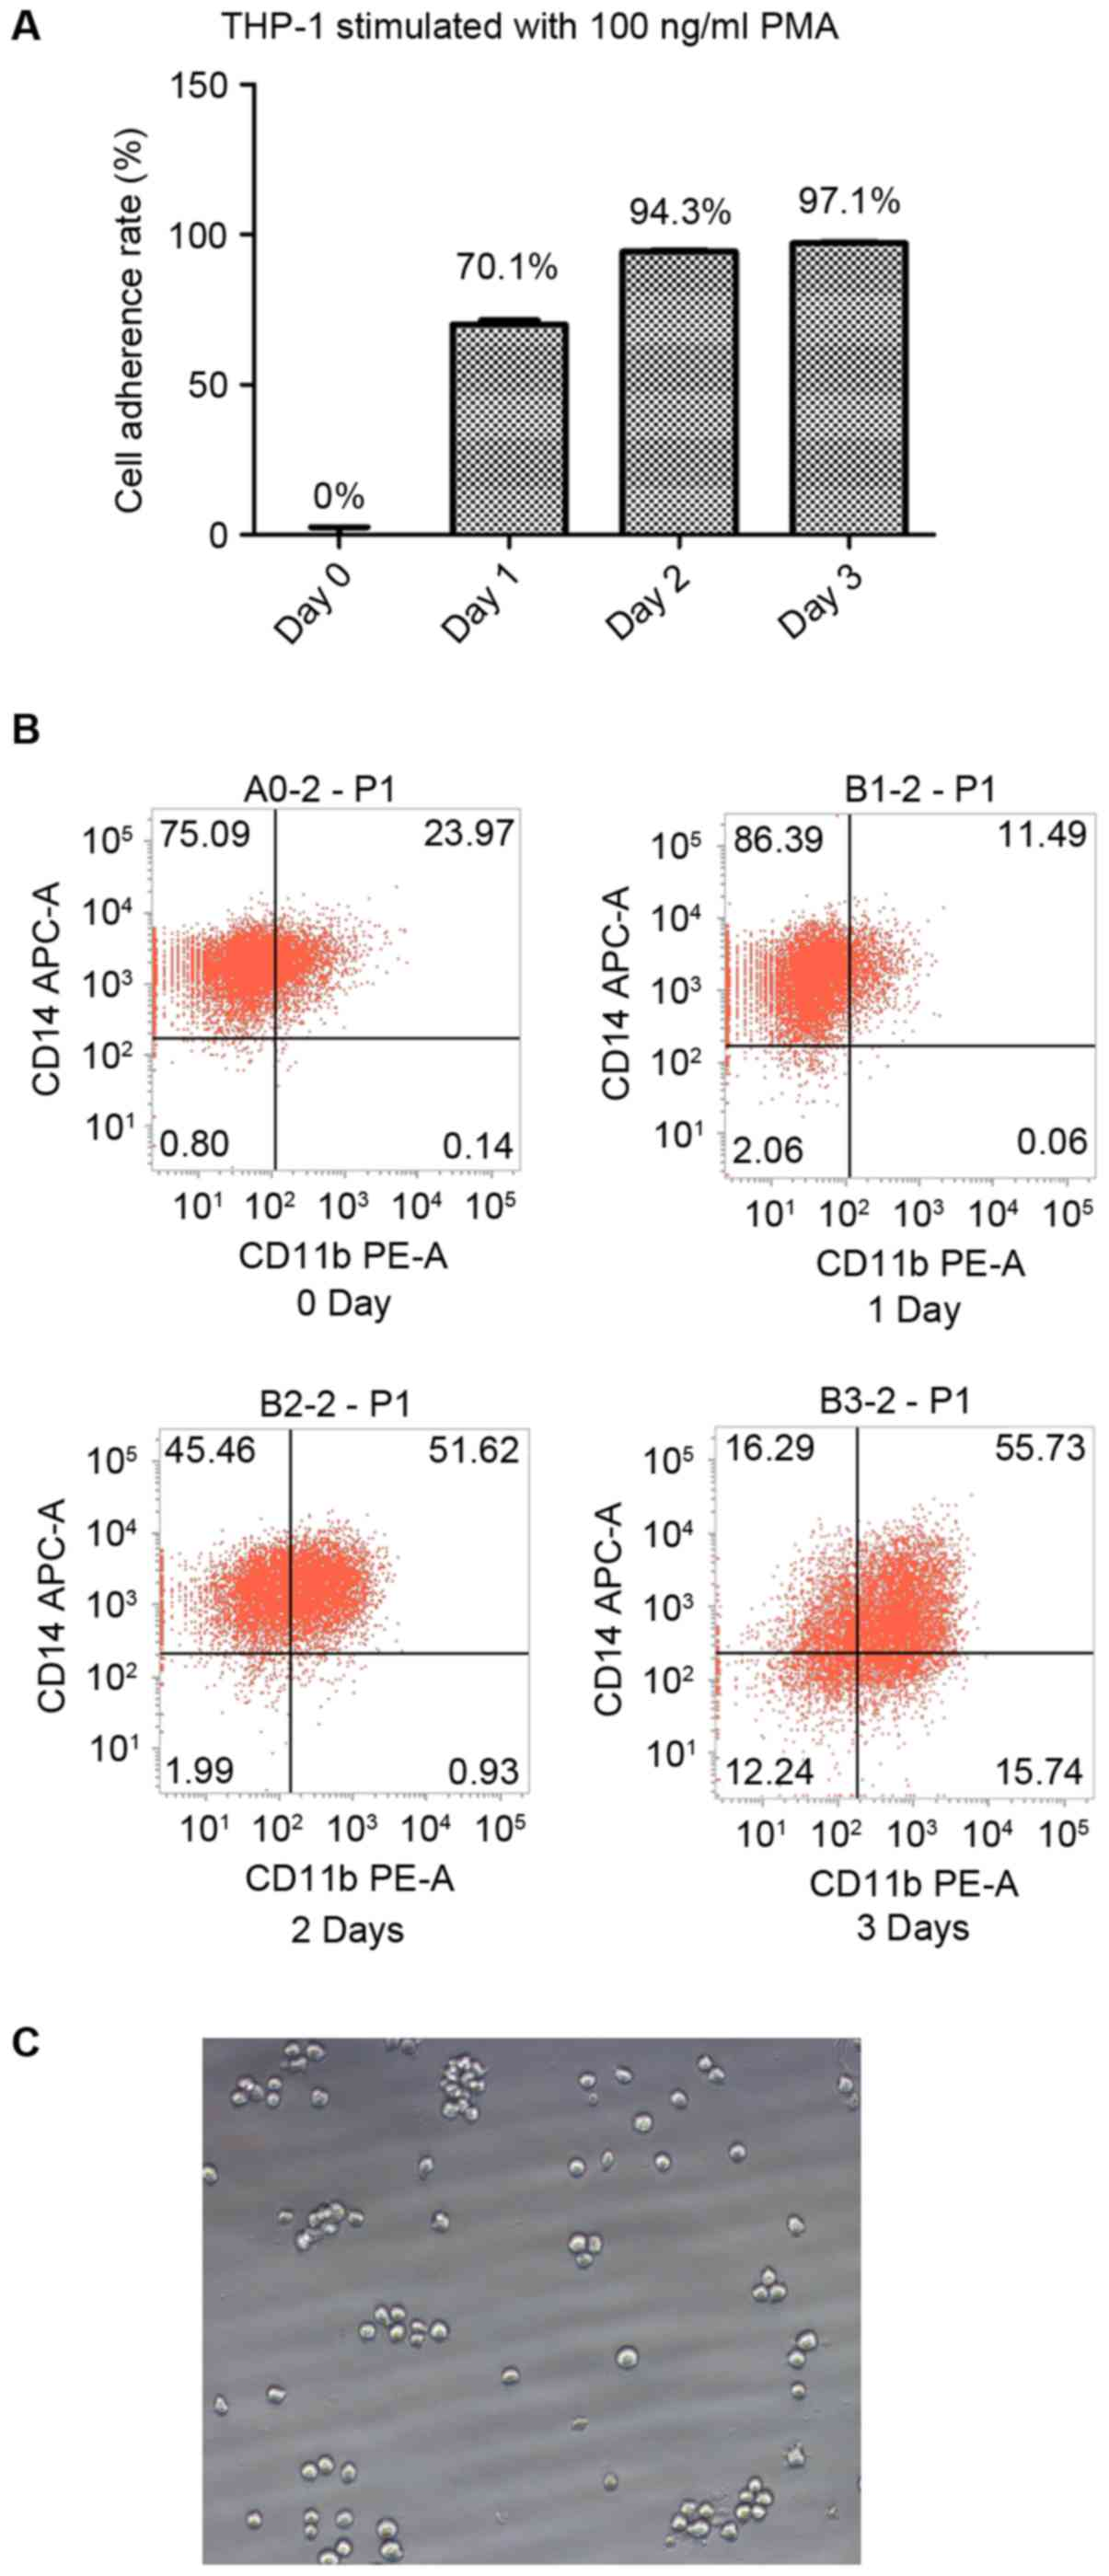 High-dose PMA with RANKL and MCSF induces THP‑1 cell